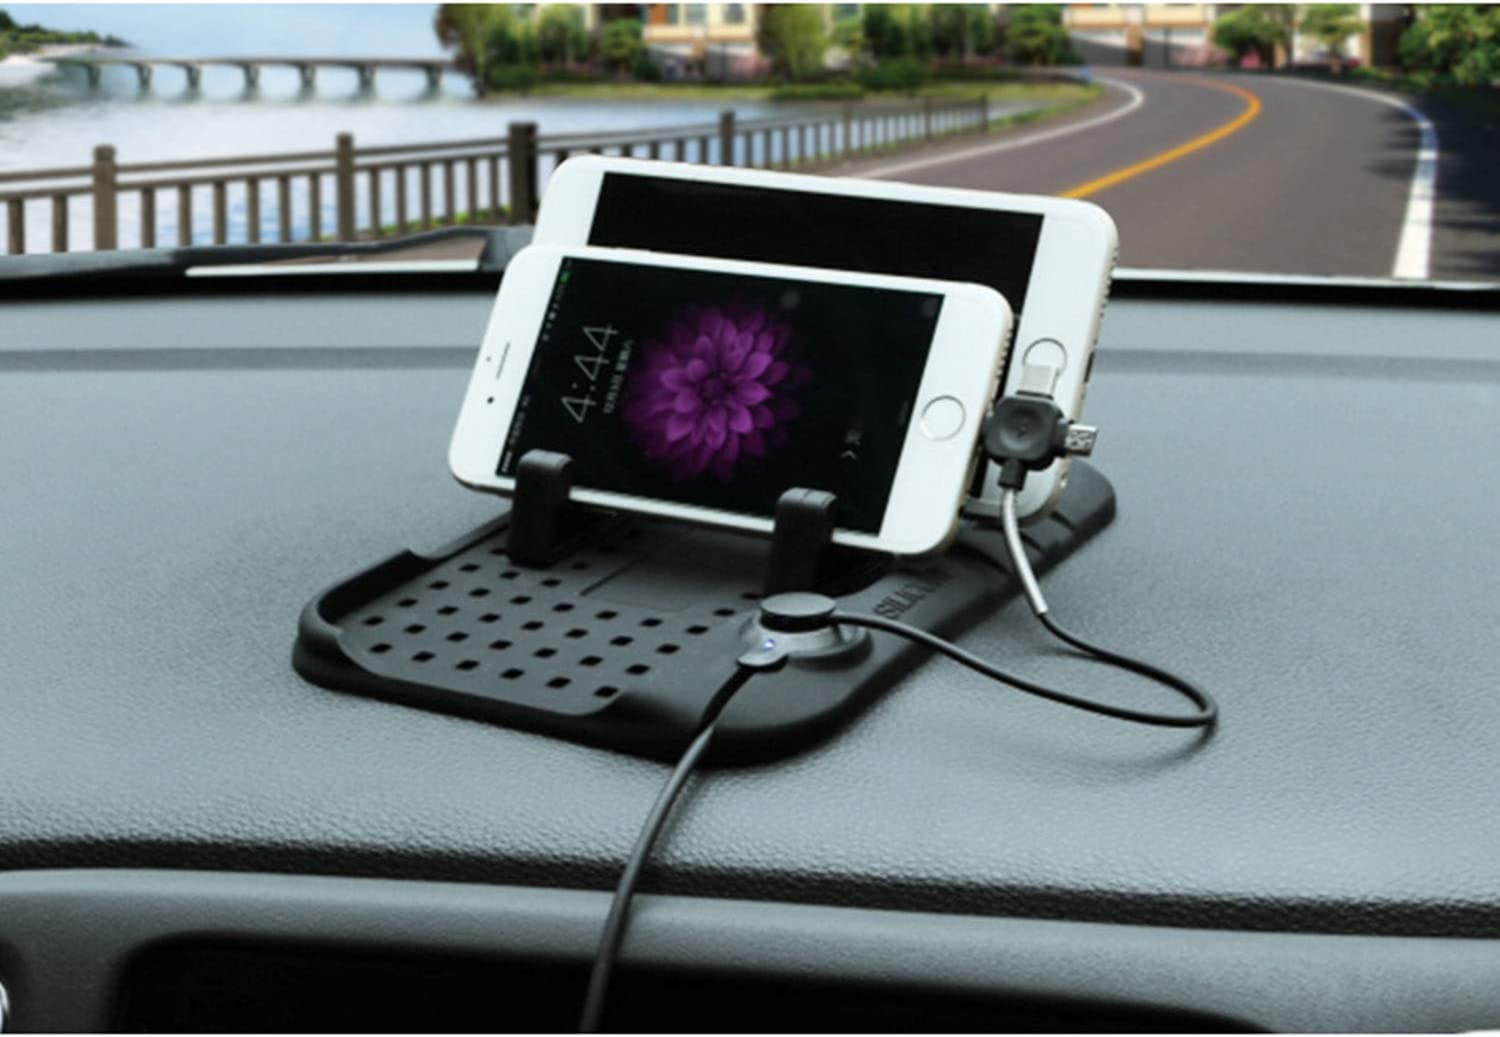 DEF Universal Type Car Magnetic Suction Charging Bracket Car Silicone Anti Slip Pad for iPhone and Android Mobile Devices